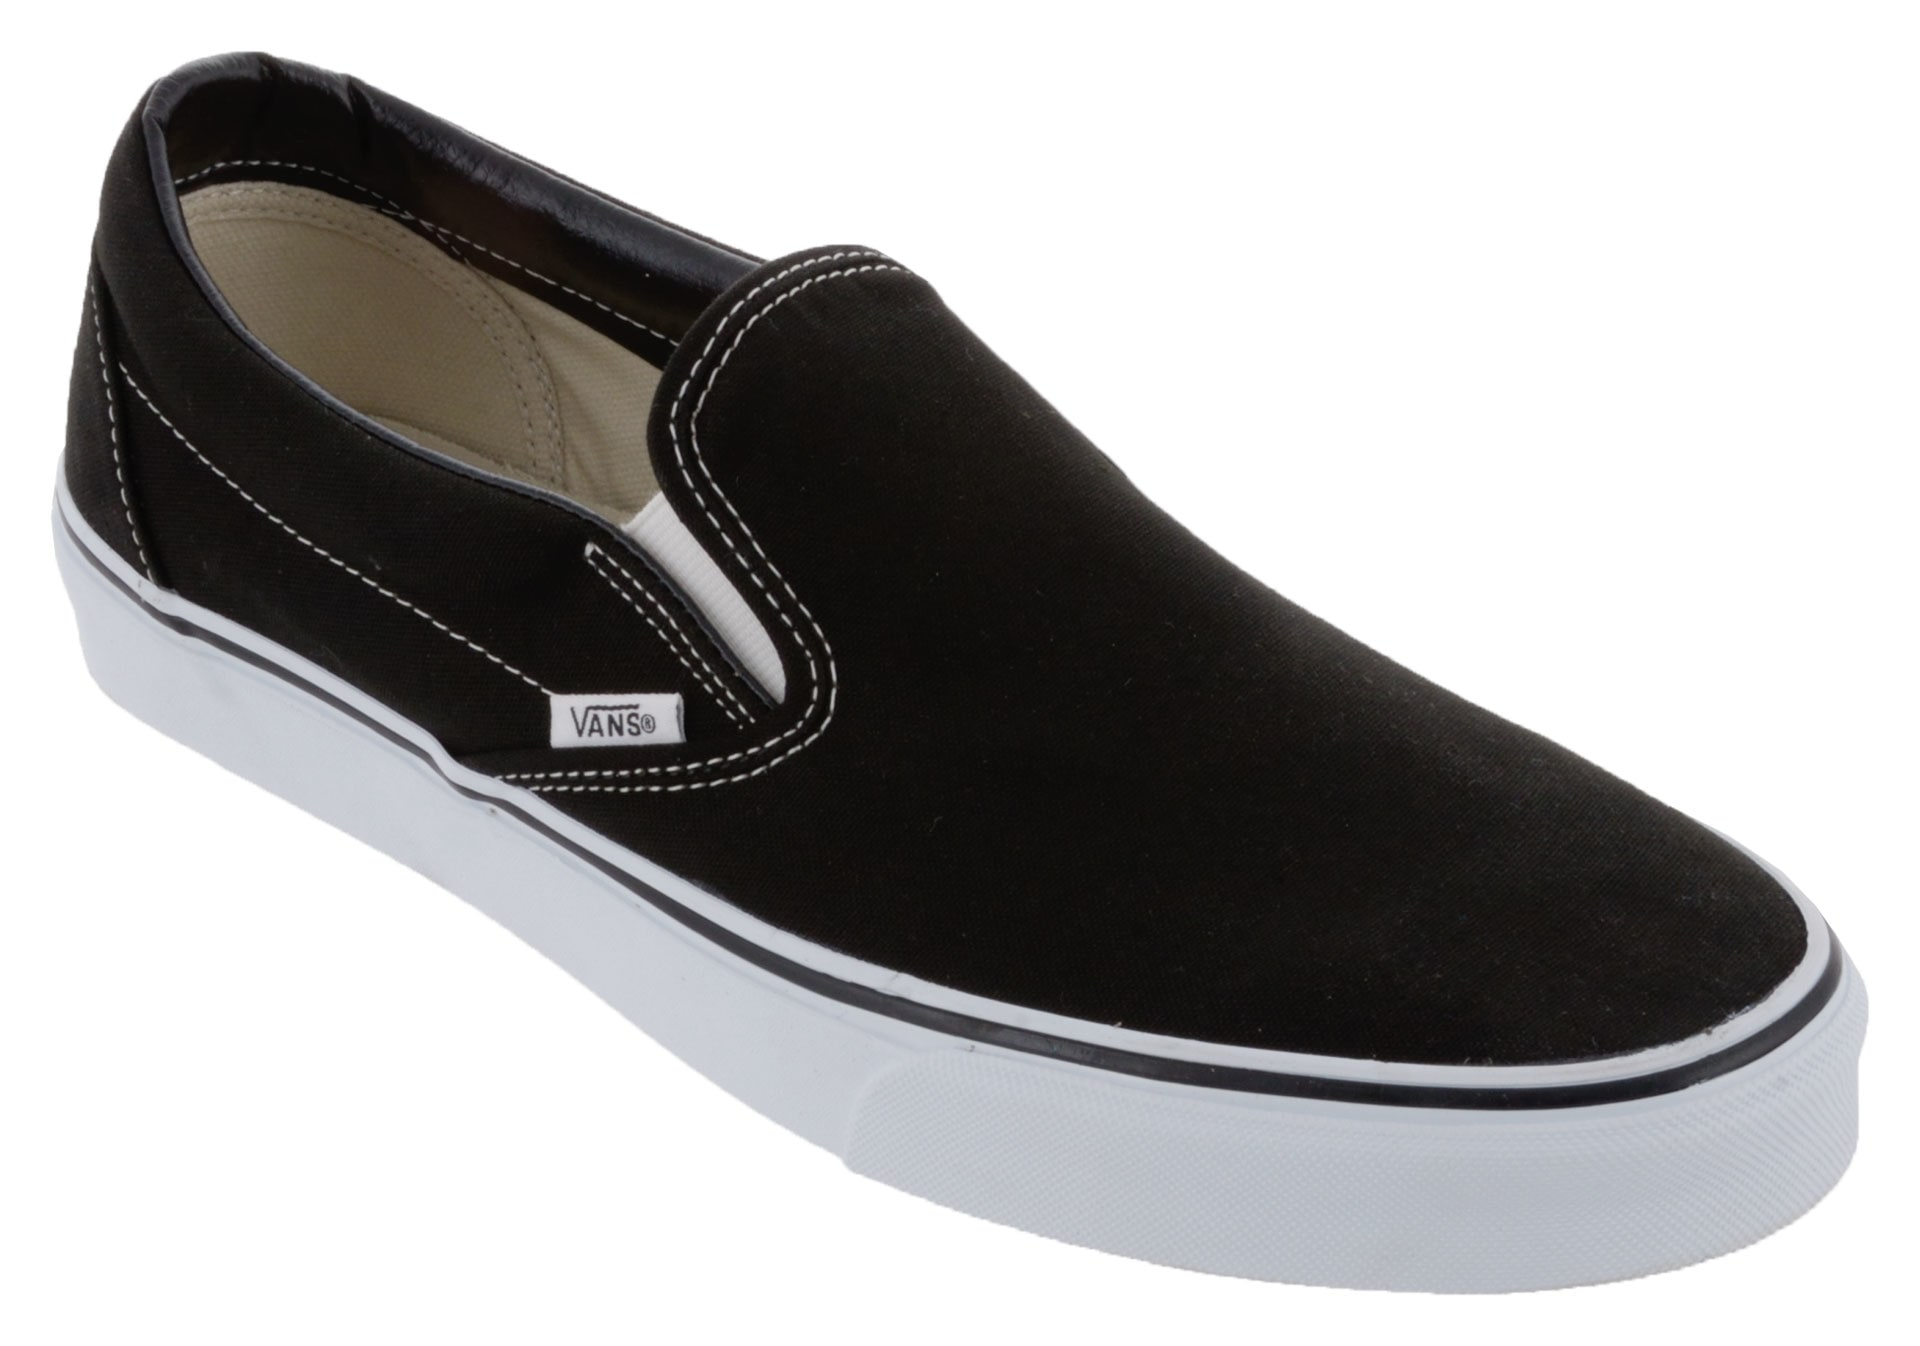 Skechers Women's Dynamight Black/White Slip-On Shoes. We also offer you a variety of styles to choose from, including: slip resistant nursing shoes, lace up or slip on sneakers, slip on nursing clogs, and much more! Use our handy shopping assistant to narrow down your search and find the right nursing shoes to fit your needs and style. FREE.